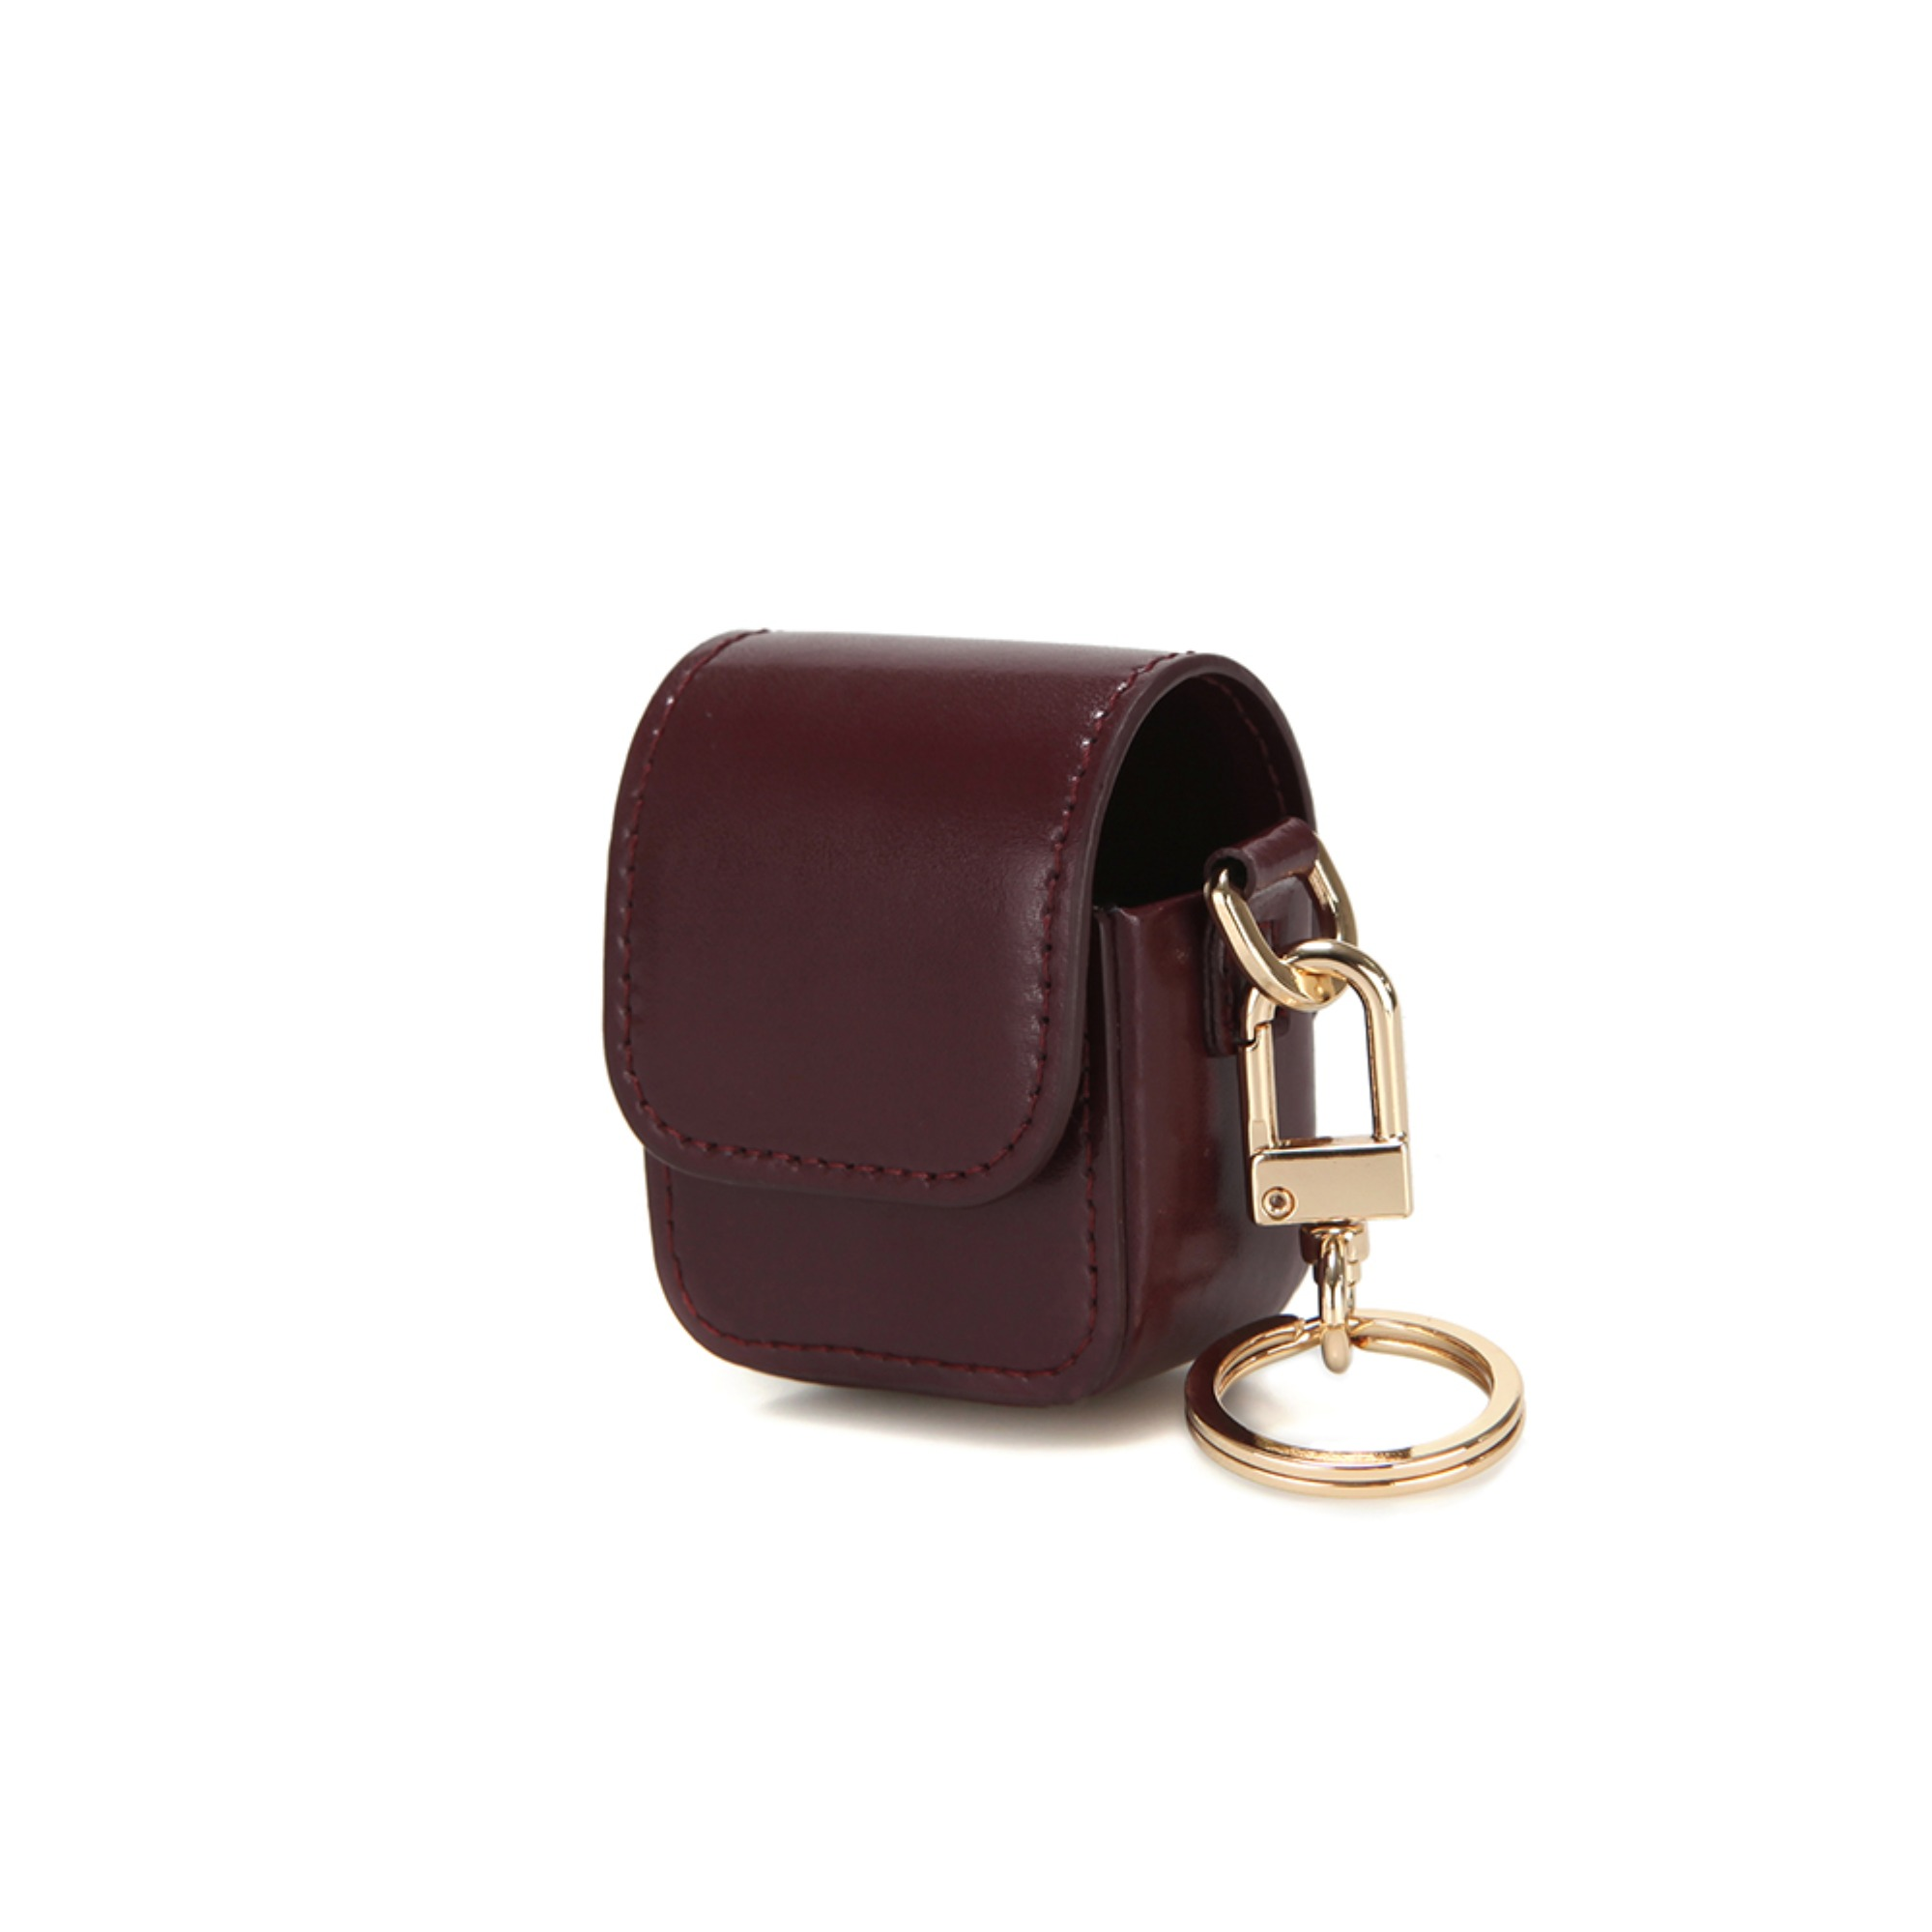 LEATHER AIRPODS CASE - WINE